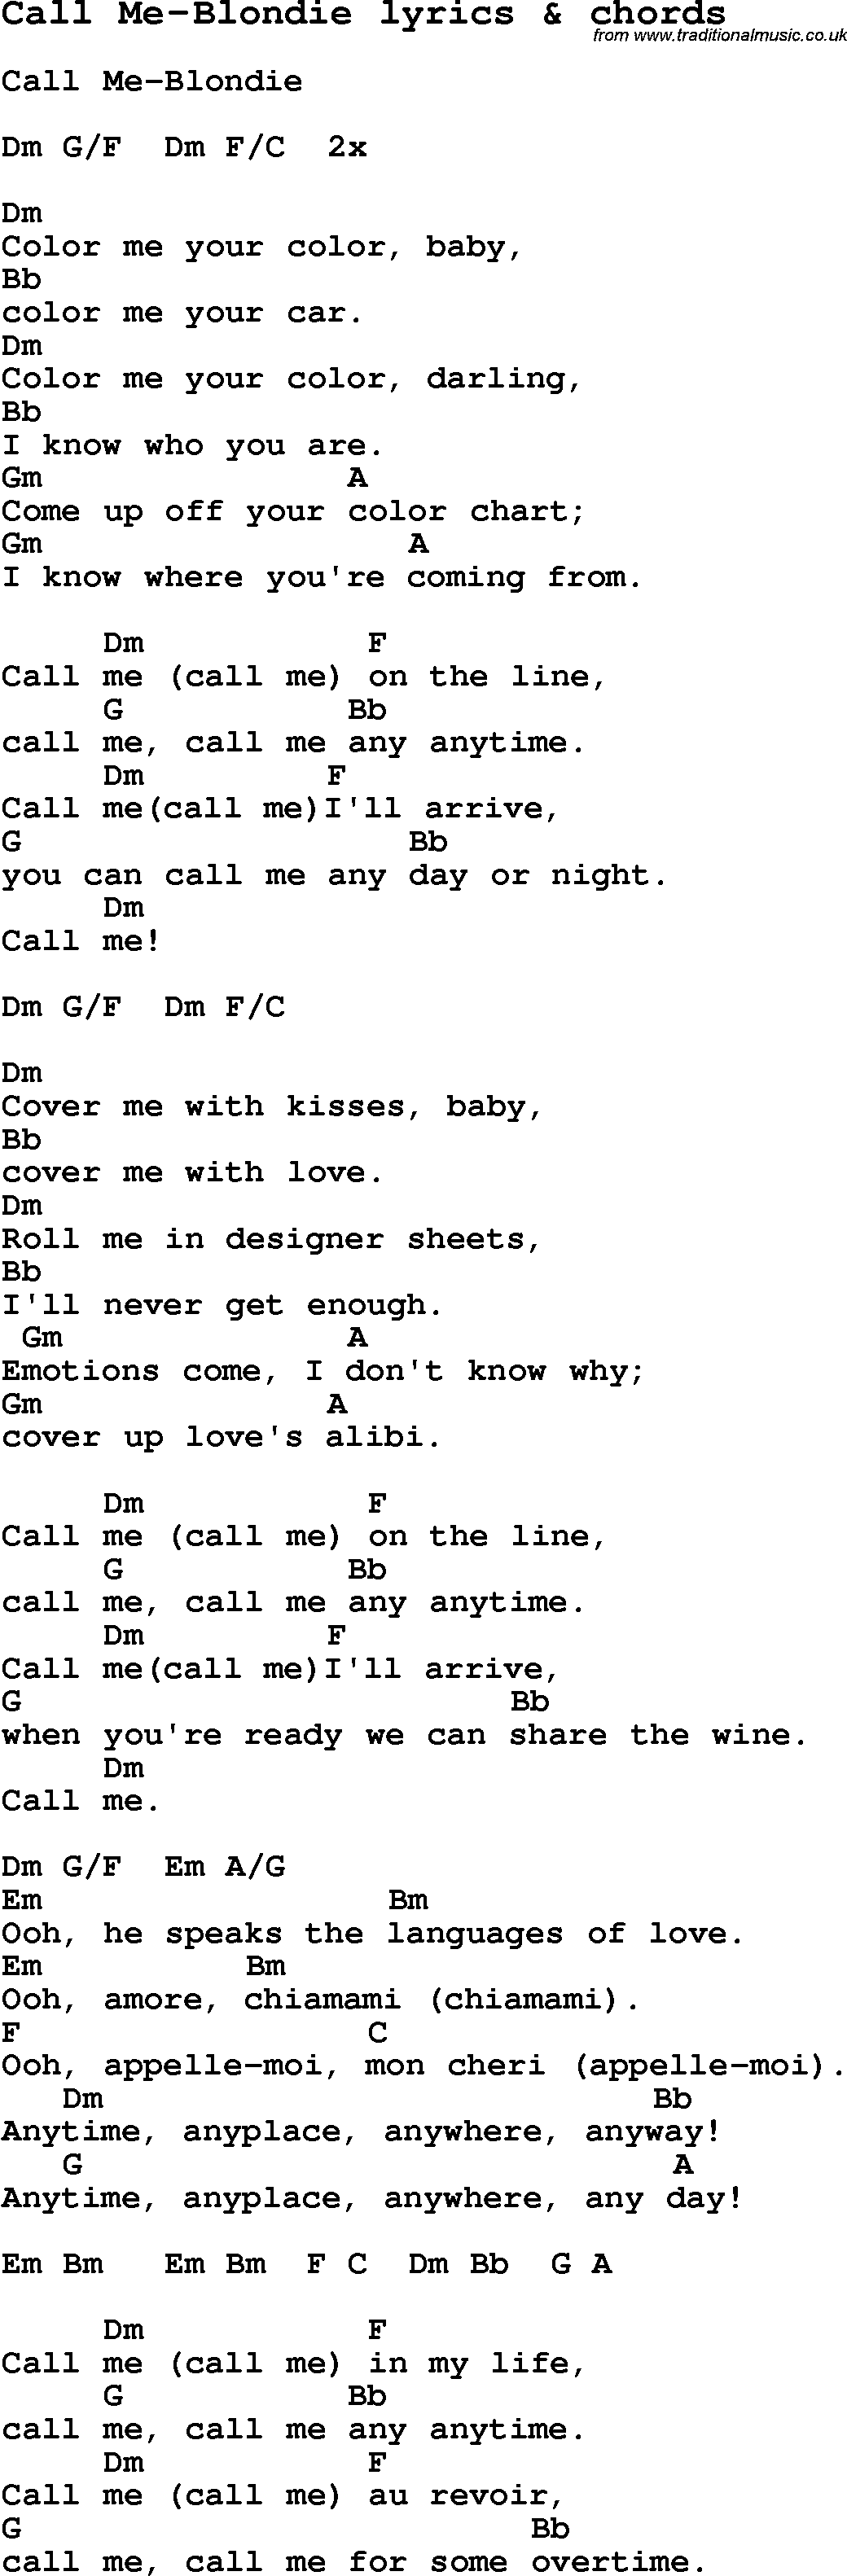 Love song lyrics forcall me blondie with chords love song lyrics for call me blondie with chords for ukulele guitar banjo hexwebz Image collections